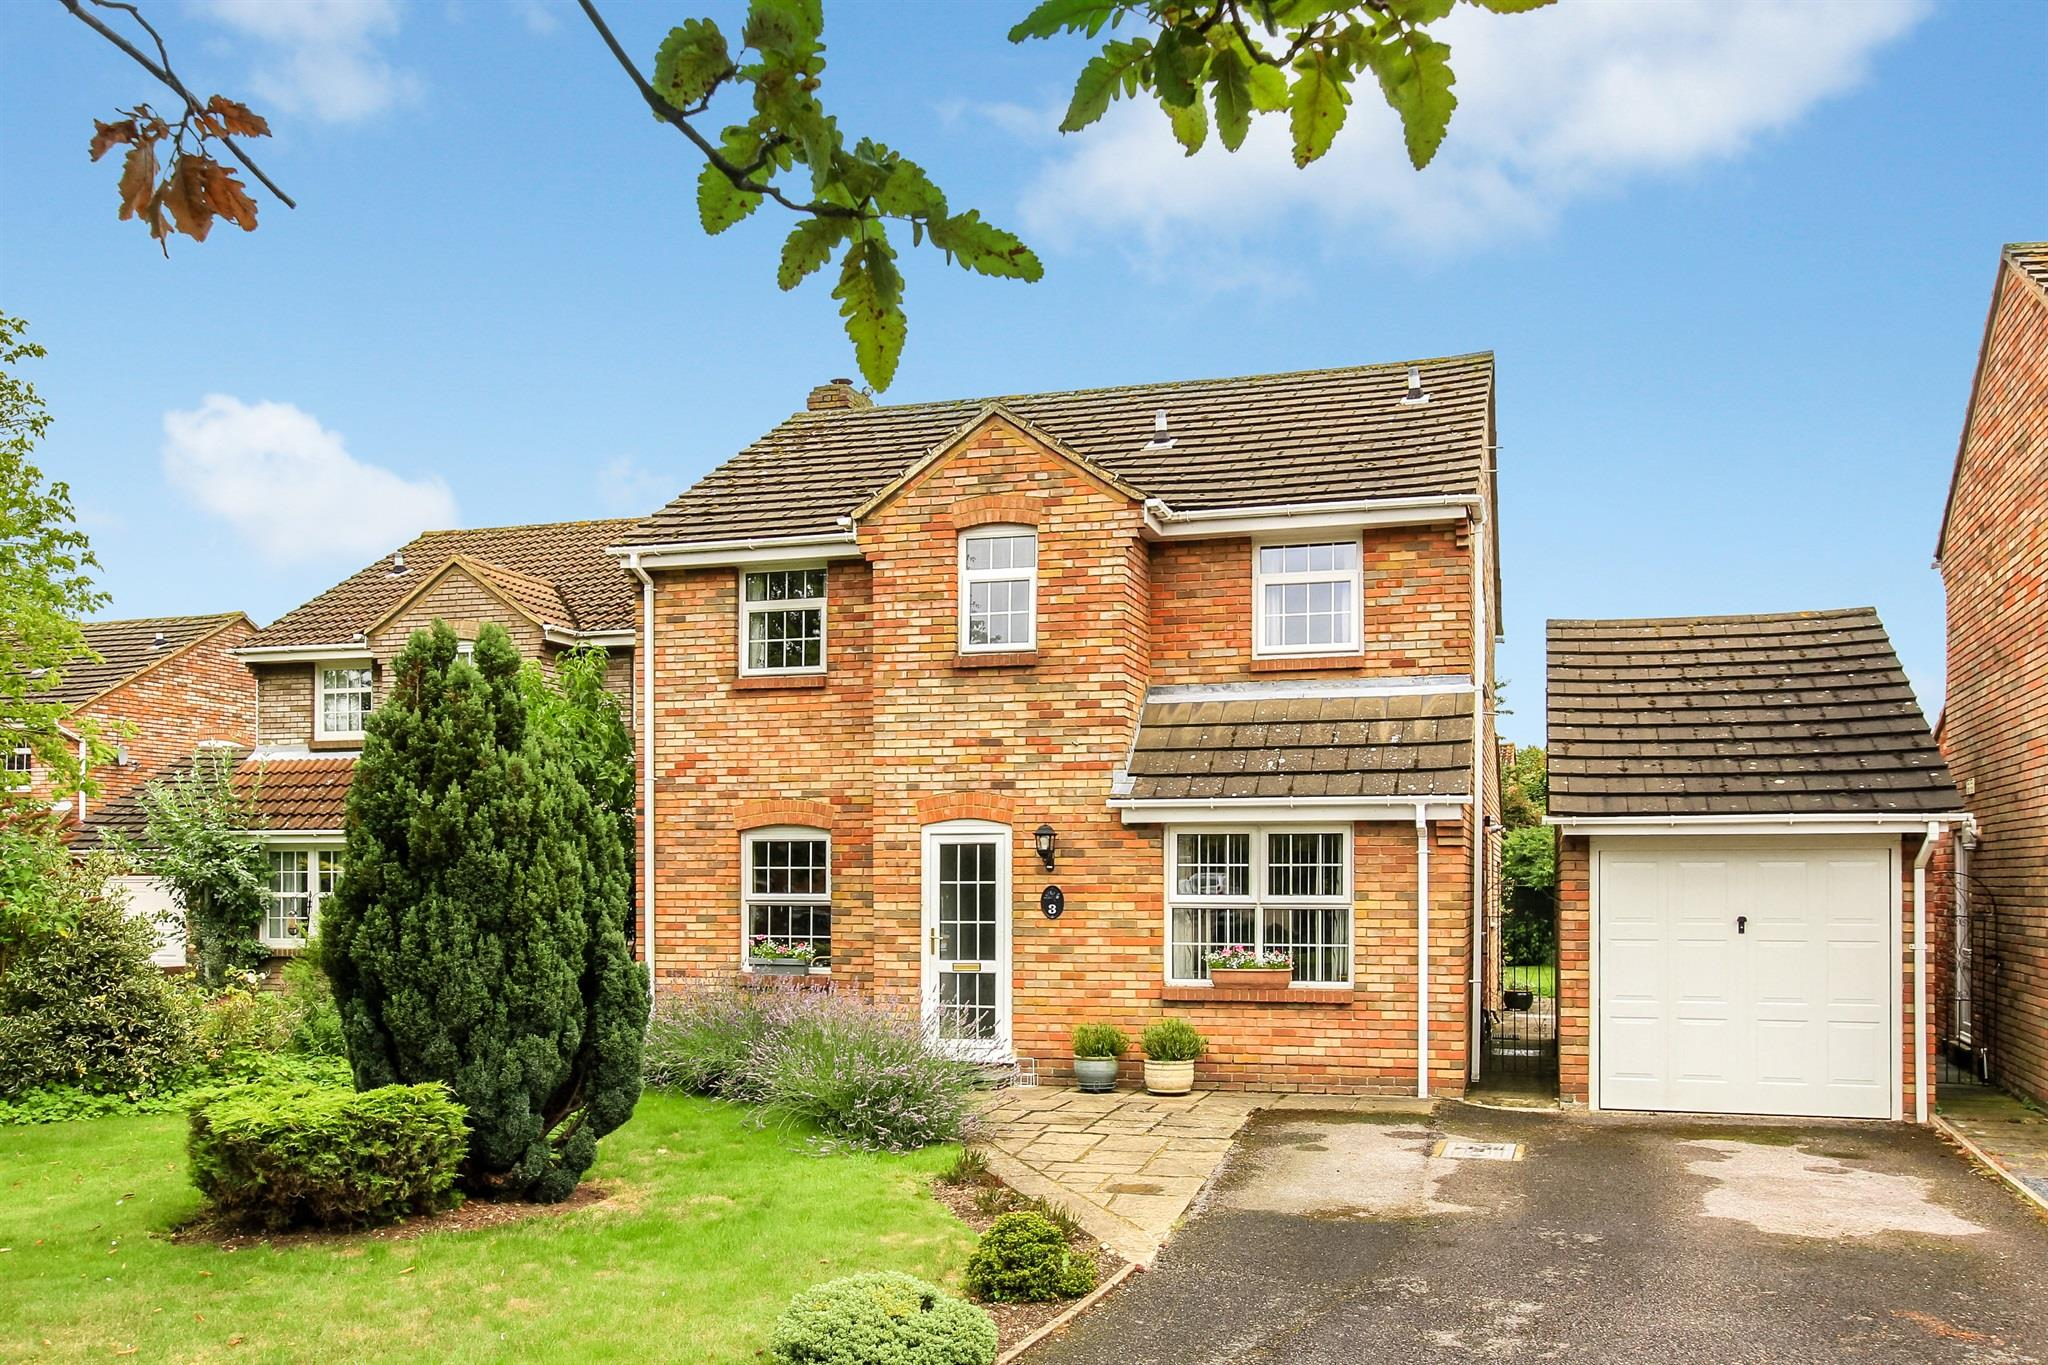 4 Bedroom Detached House For Sale Grove Gardens Tring